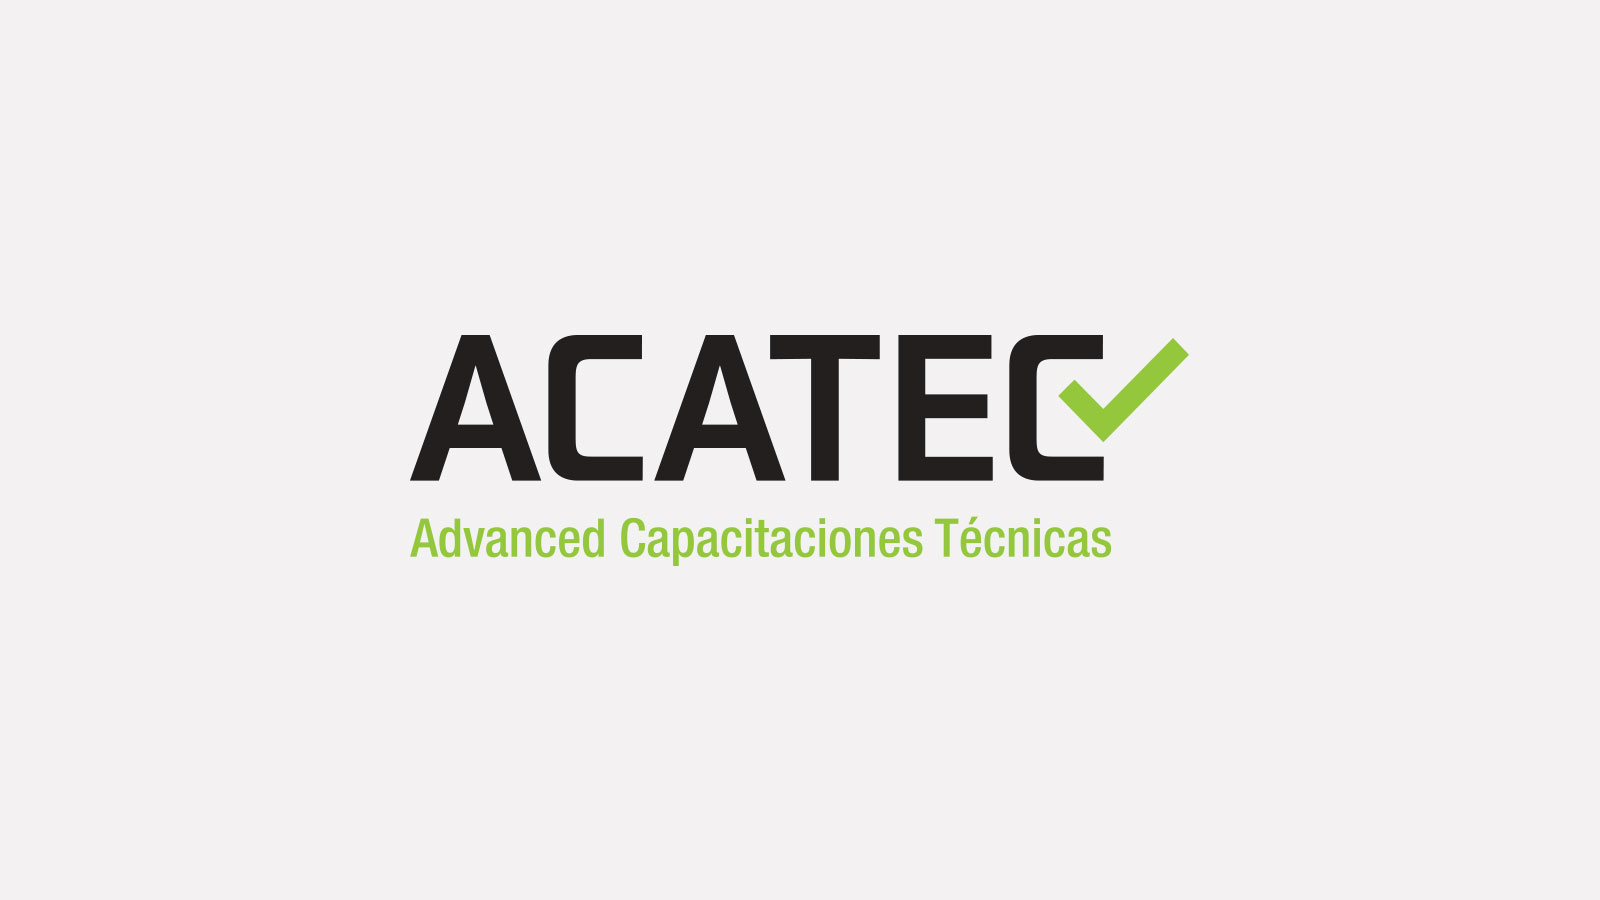 ACATEC Advanced Capacitaciones Técnicas logo